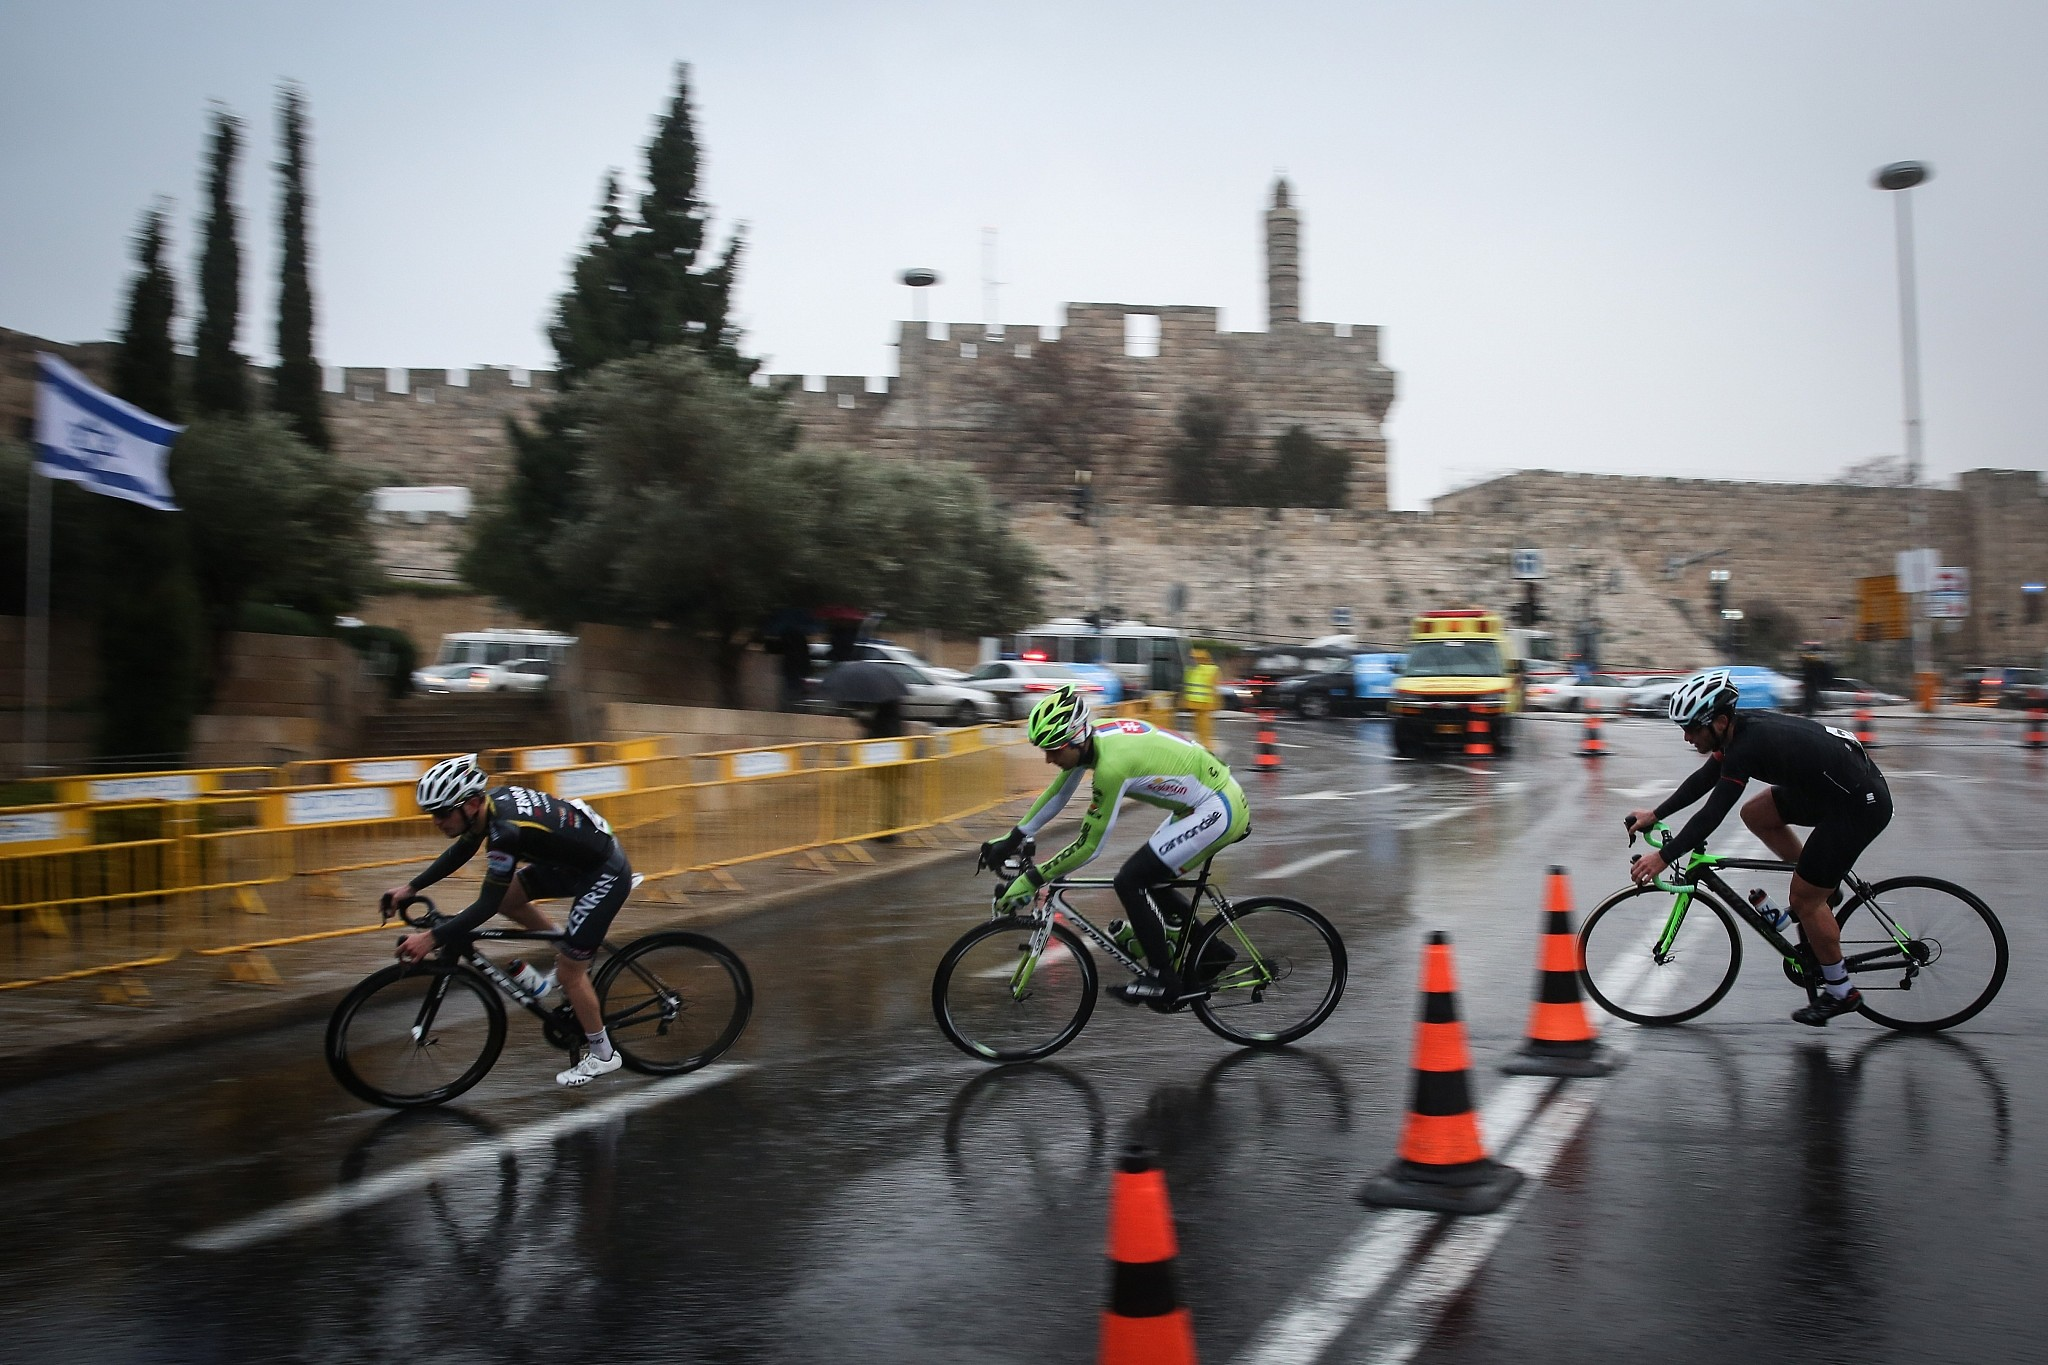 69f5a9d47cb Professional cyclists ride near the Jaffa Gate to Jerusalem's Old City in a race  organized by